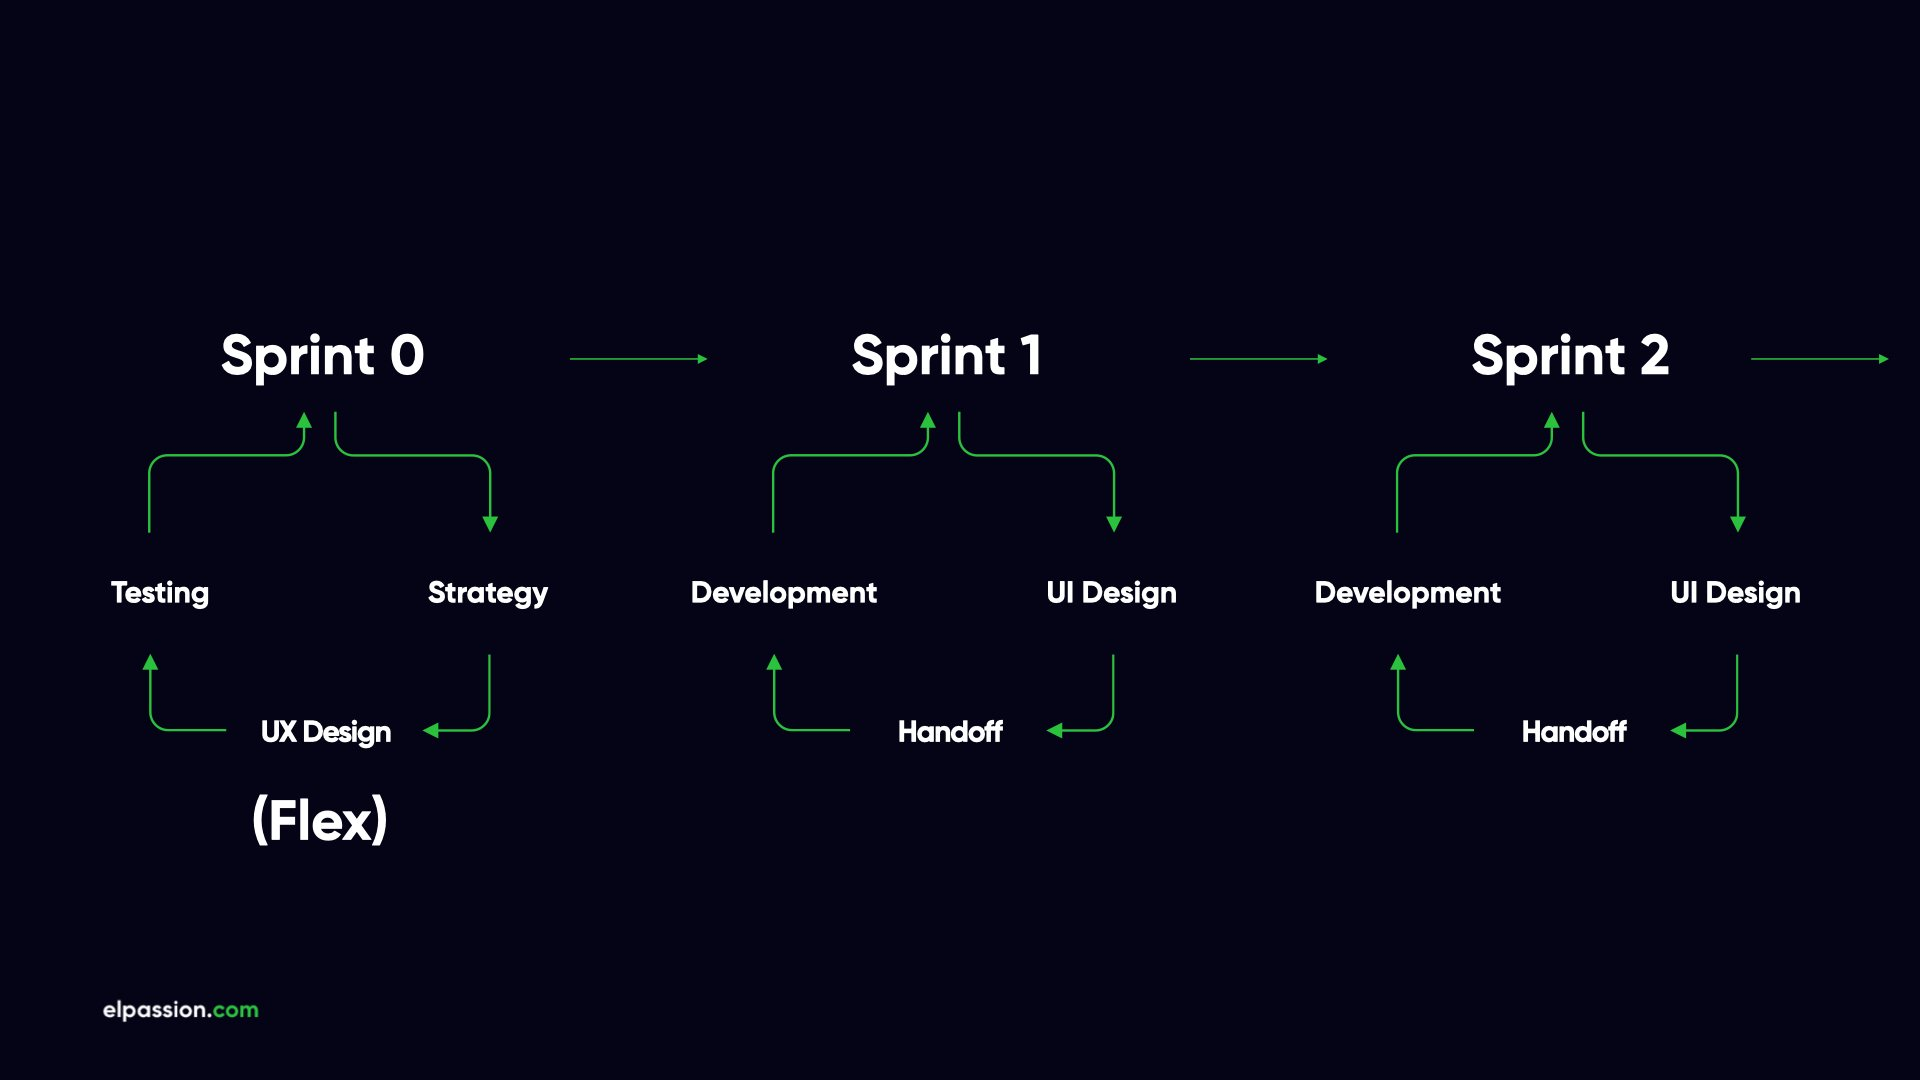 How-to-use-agile-methodology-in-project-sprints